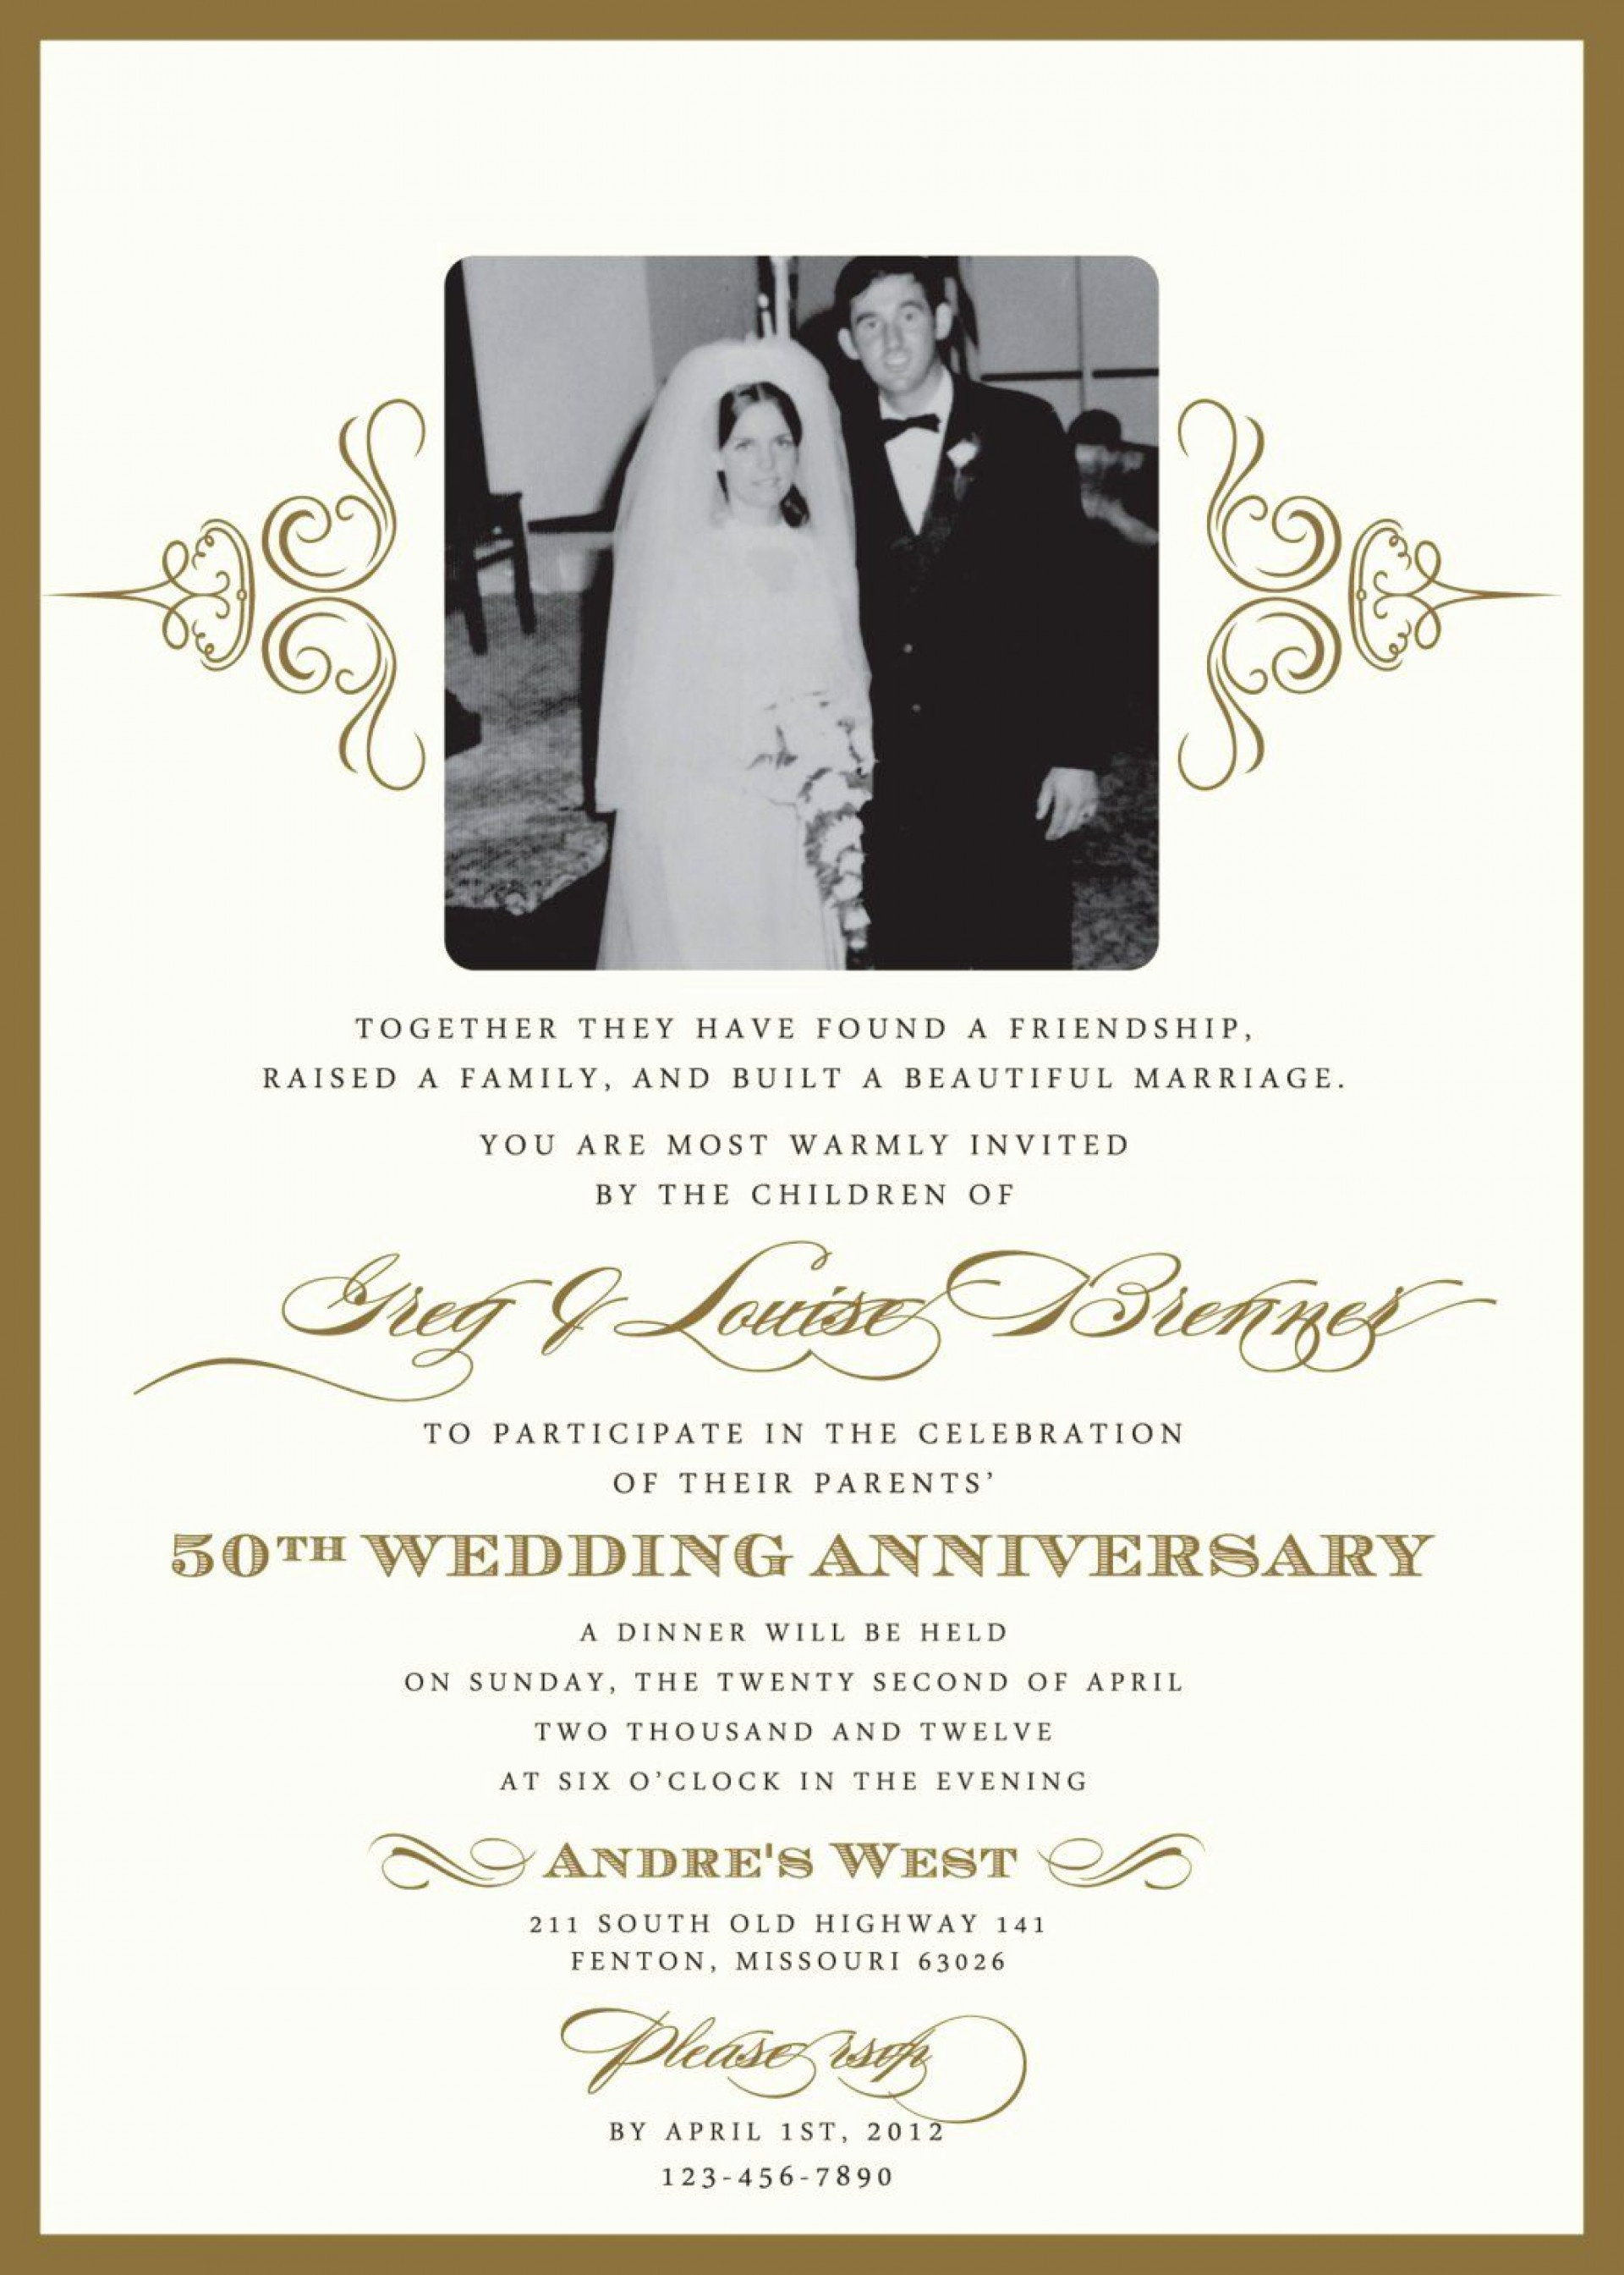 004 Excellent Free 50th Wedding Anniversary Party Invitation Template Image  Templates1920